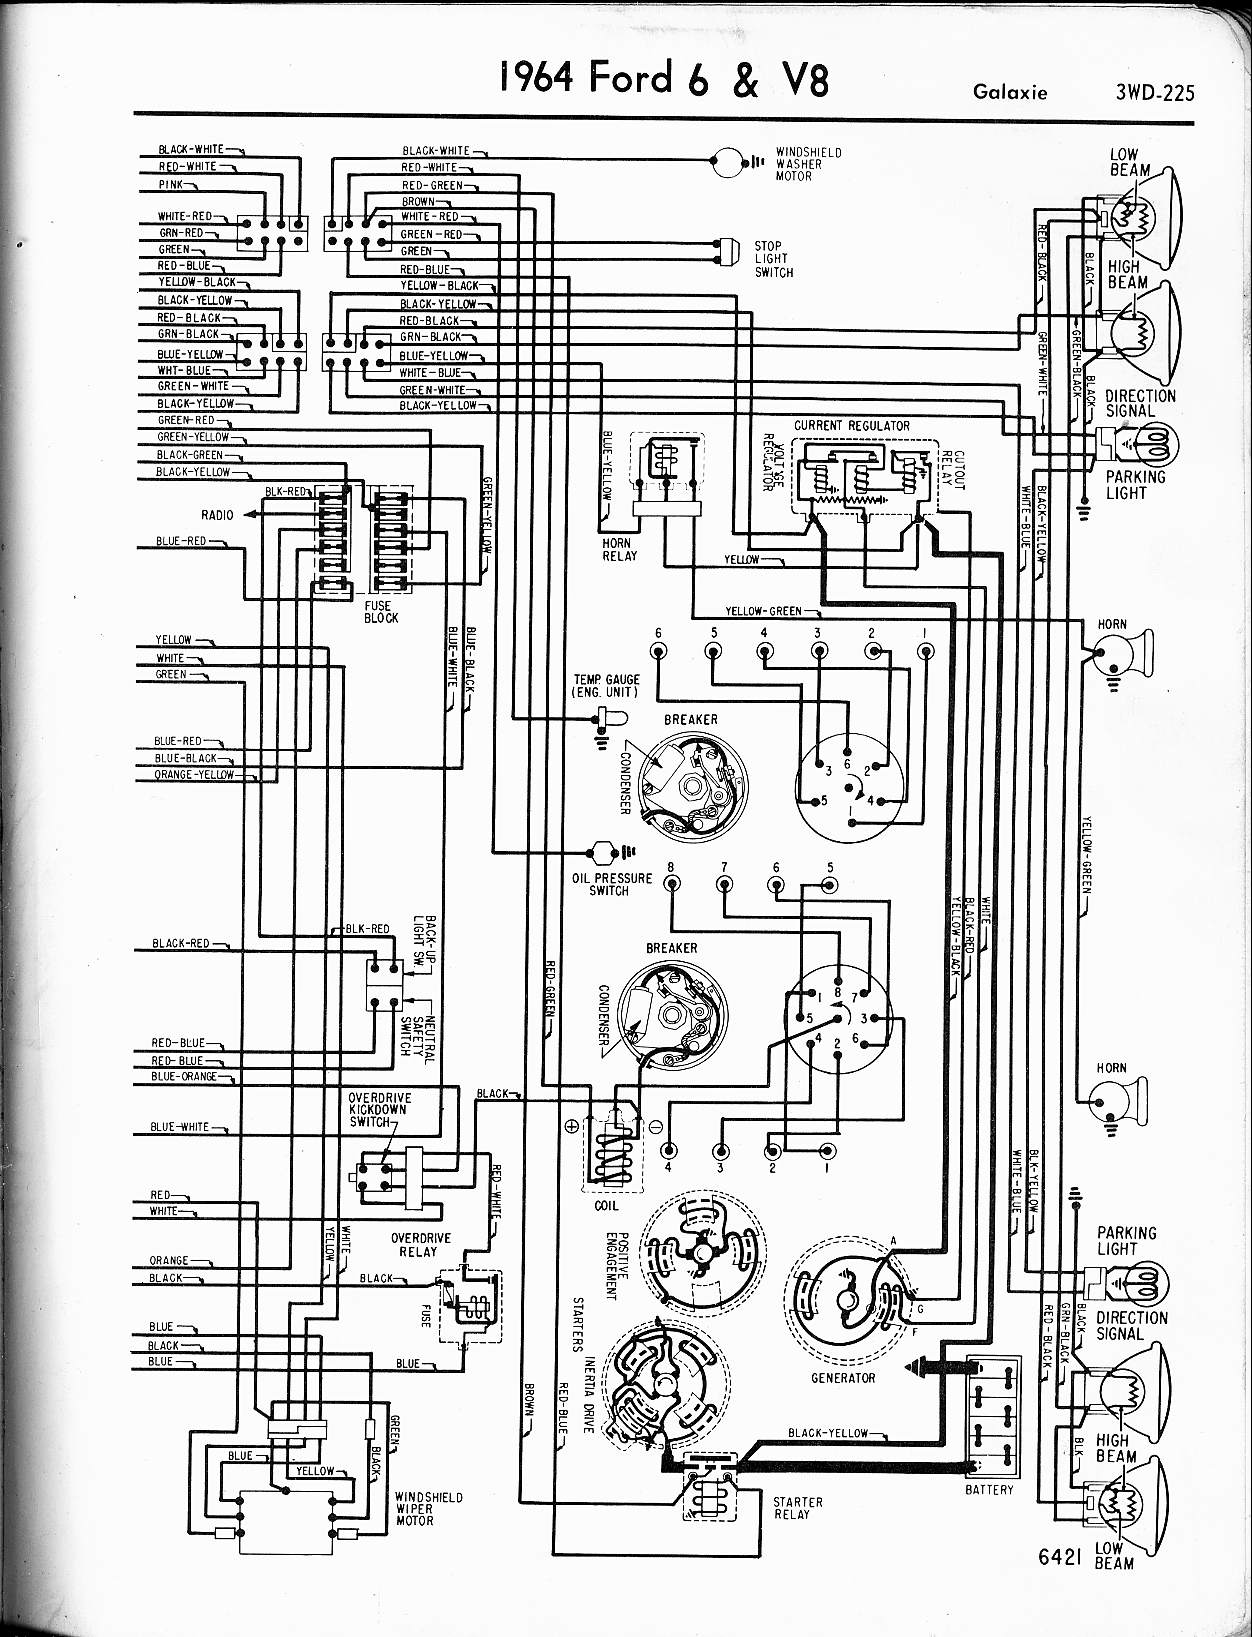 1964 Ford Falcon Wiper Switch Wiring Diagram Libraries 77 Corvette Windshield Third64 Simple